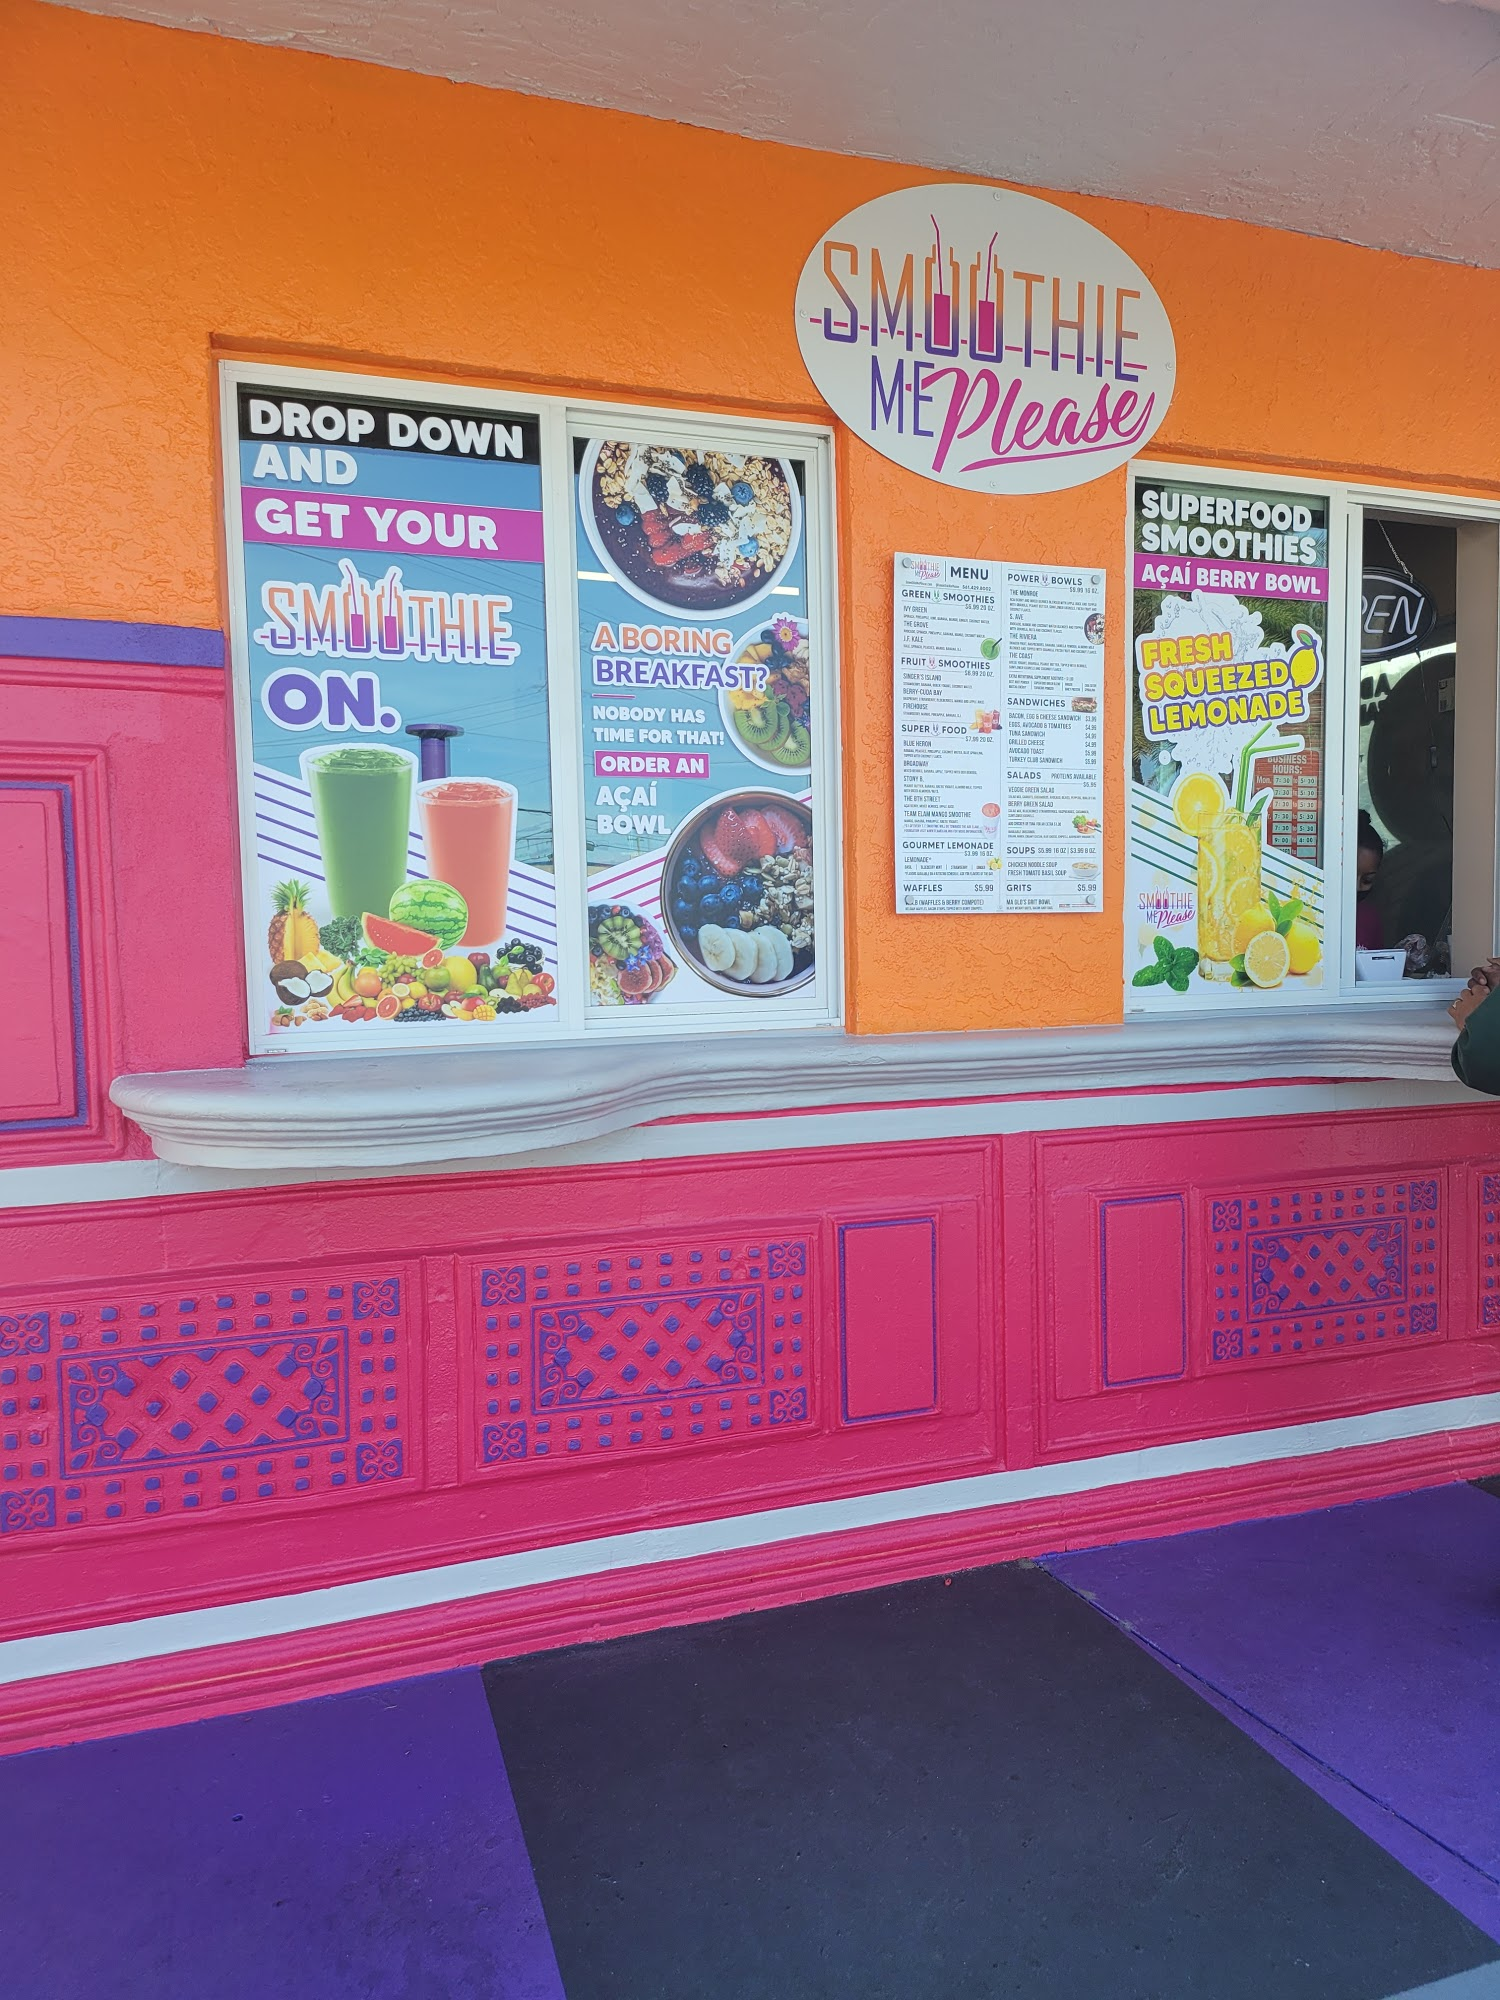 Smoothie Me Please 2635 Broadway Ave, Riviera Beach